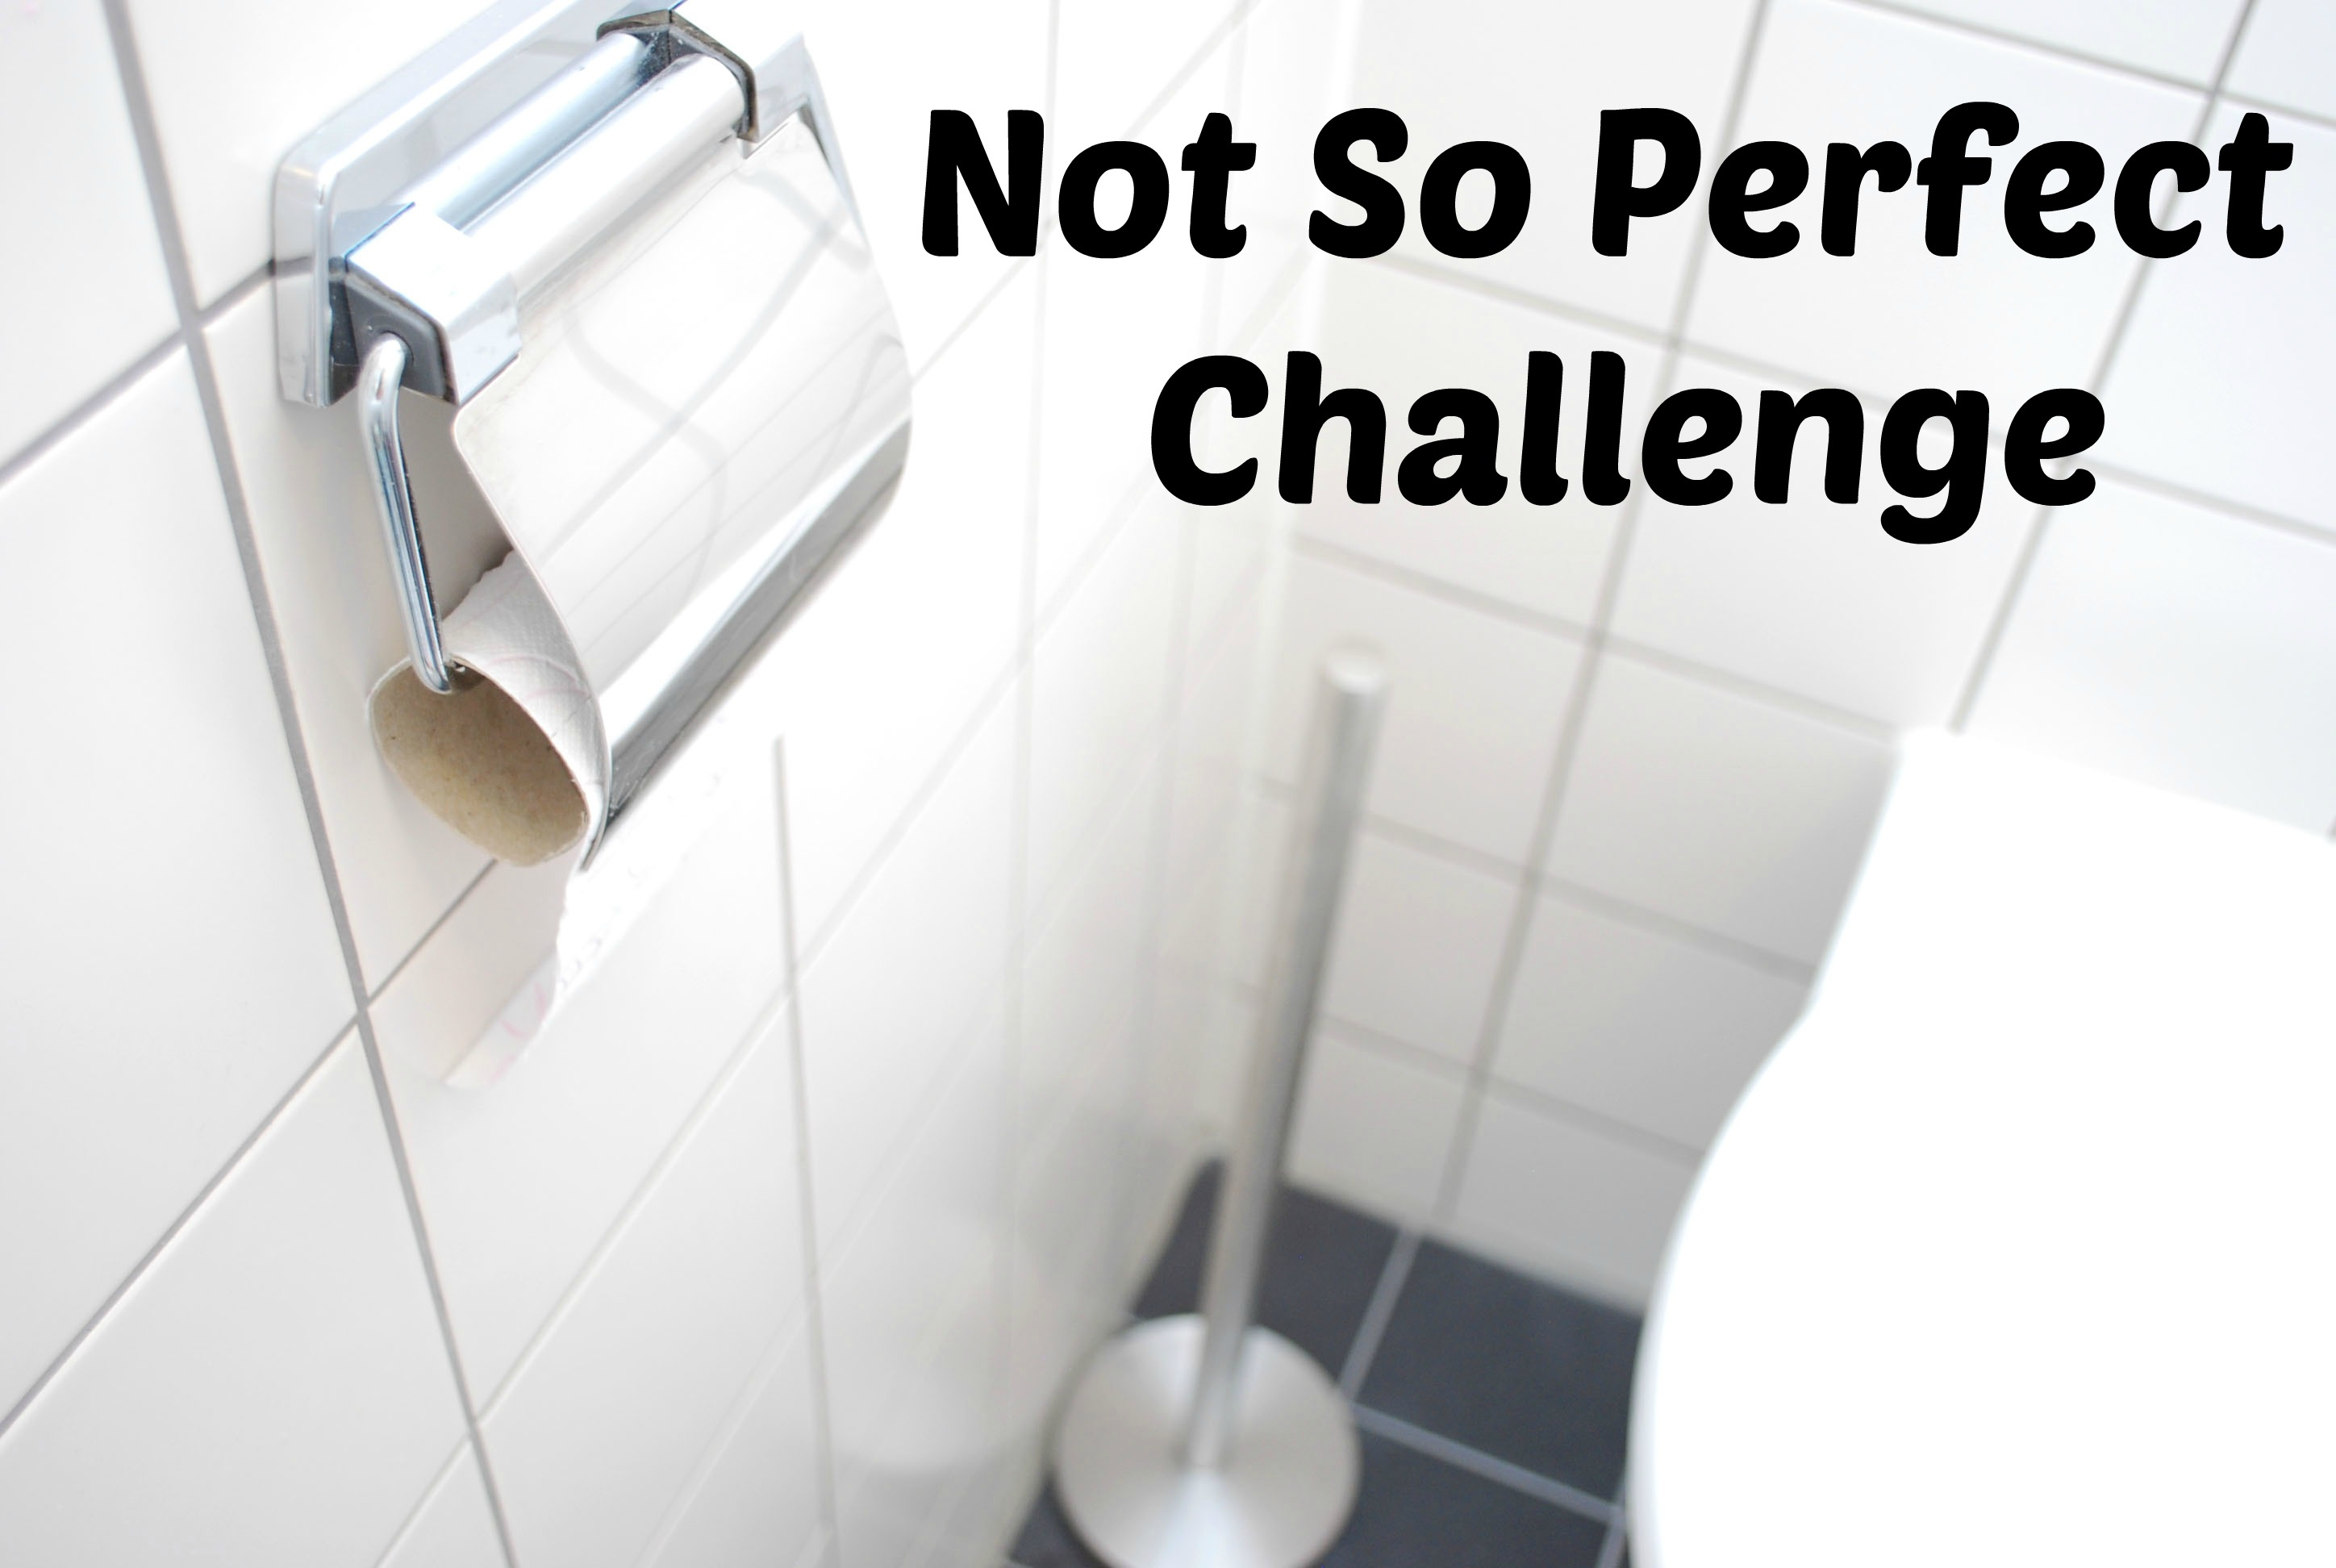 Not So Perfect Challenge